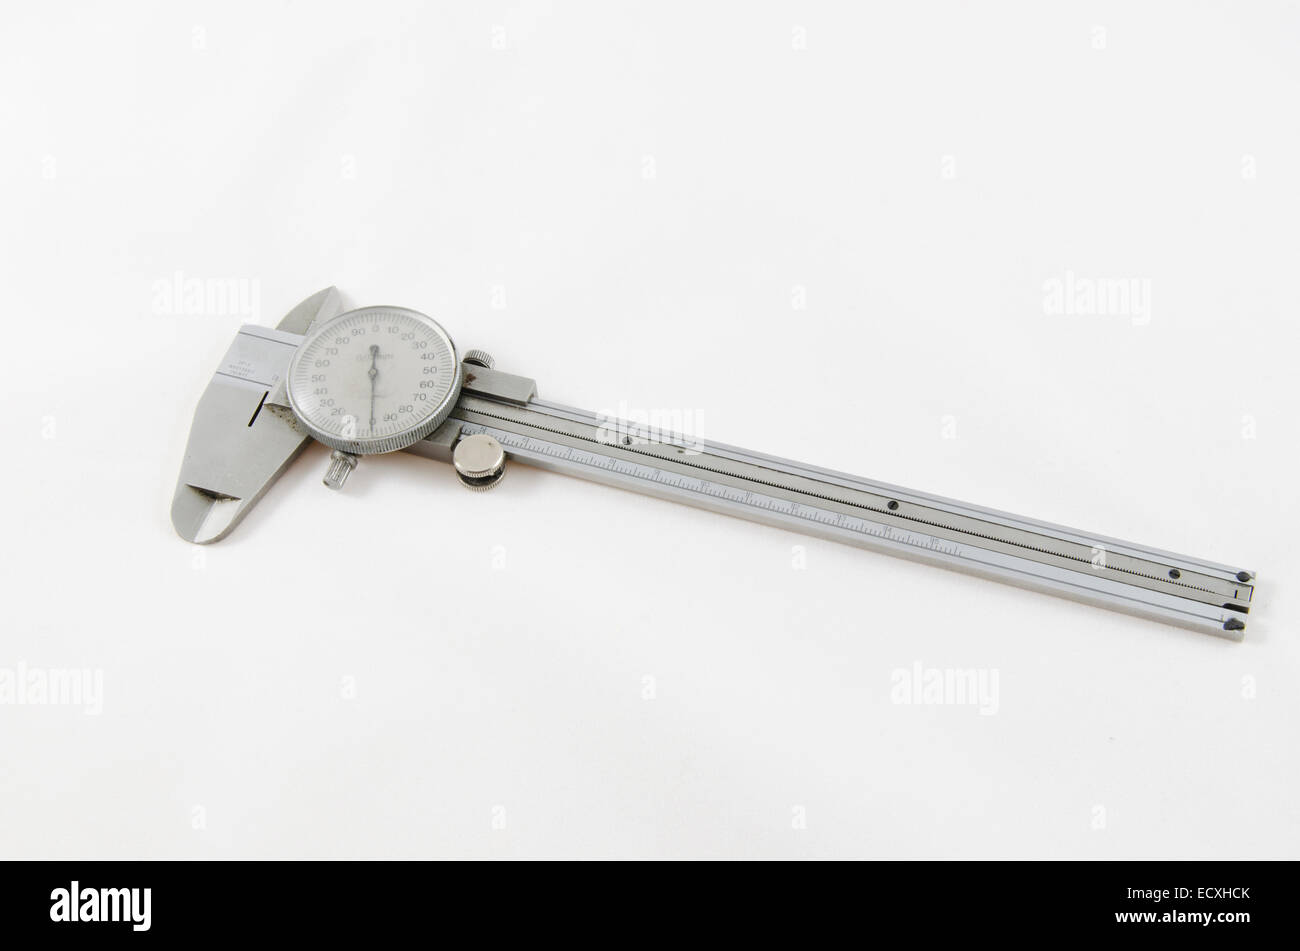 Vernier caliper precision tool isolated on white - Stock Image